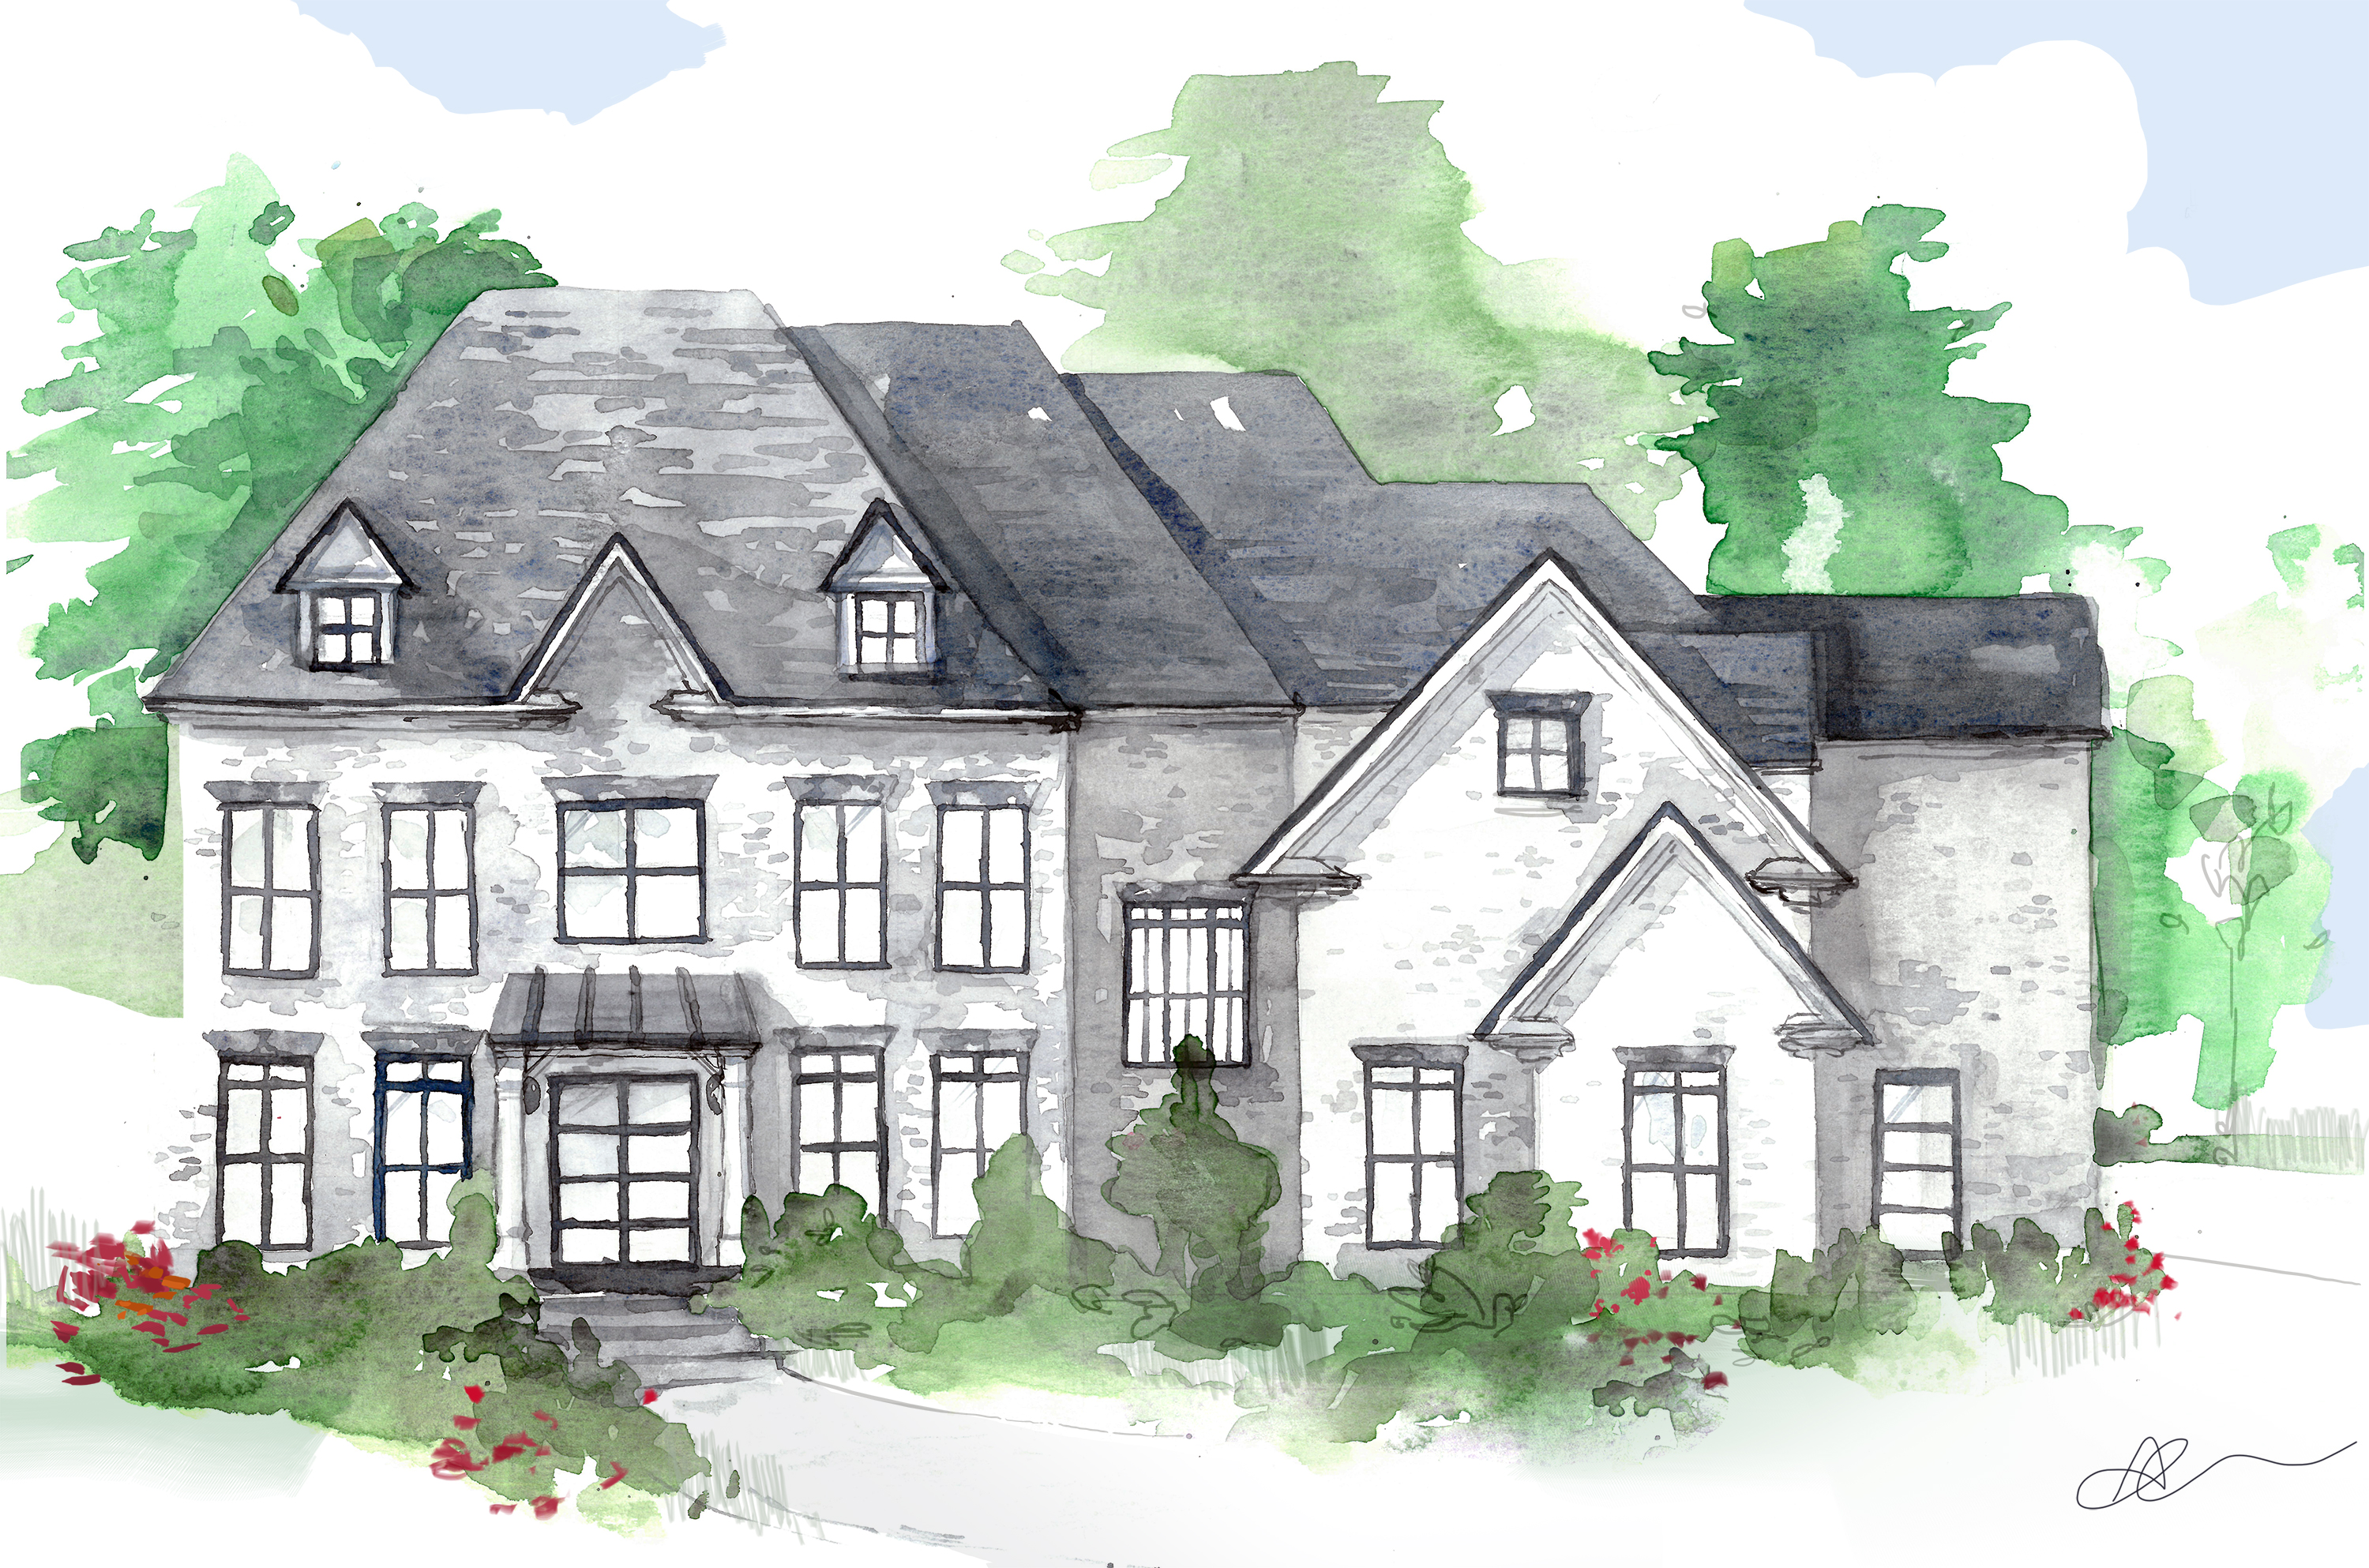 단독 가정 주택 용 매매 에 Beautiful New Build Near Chastain 4571 Dudley Lane Sandy Springs, 조지아 30327 미국